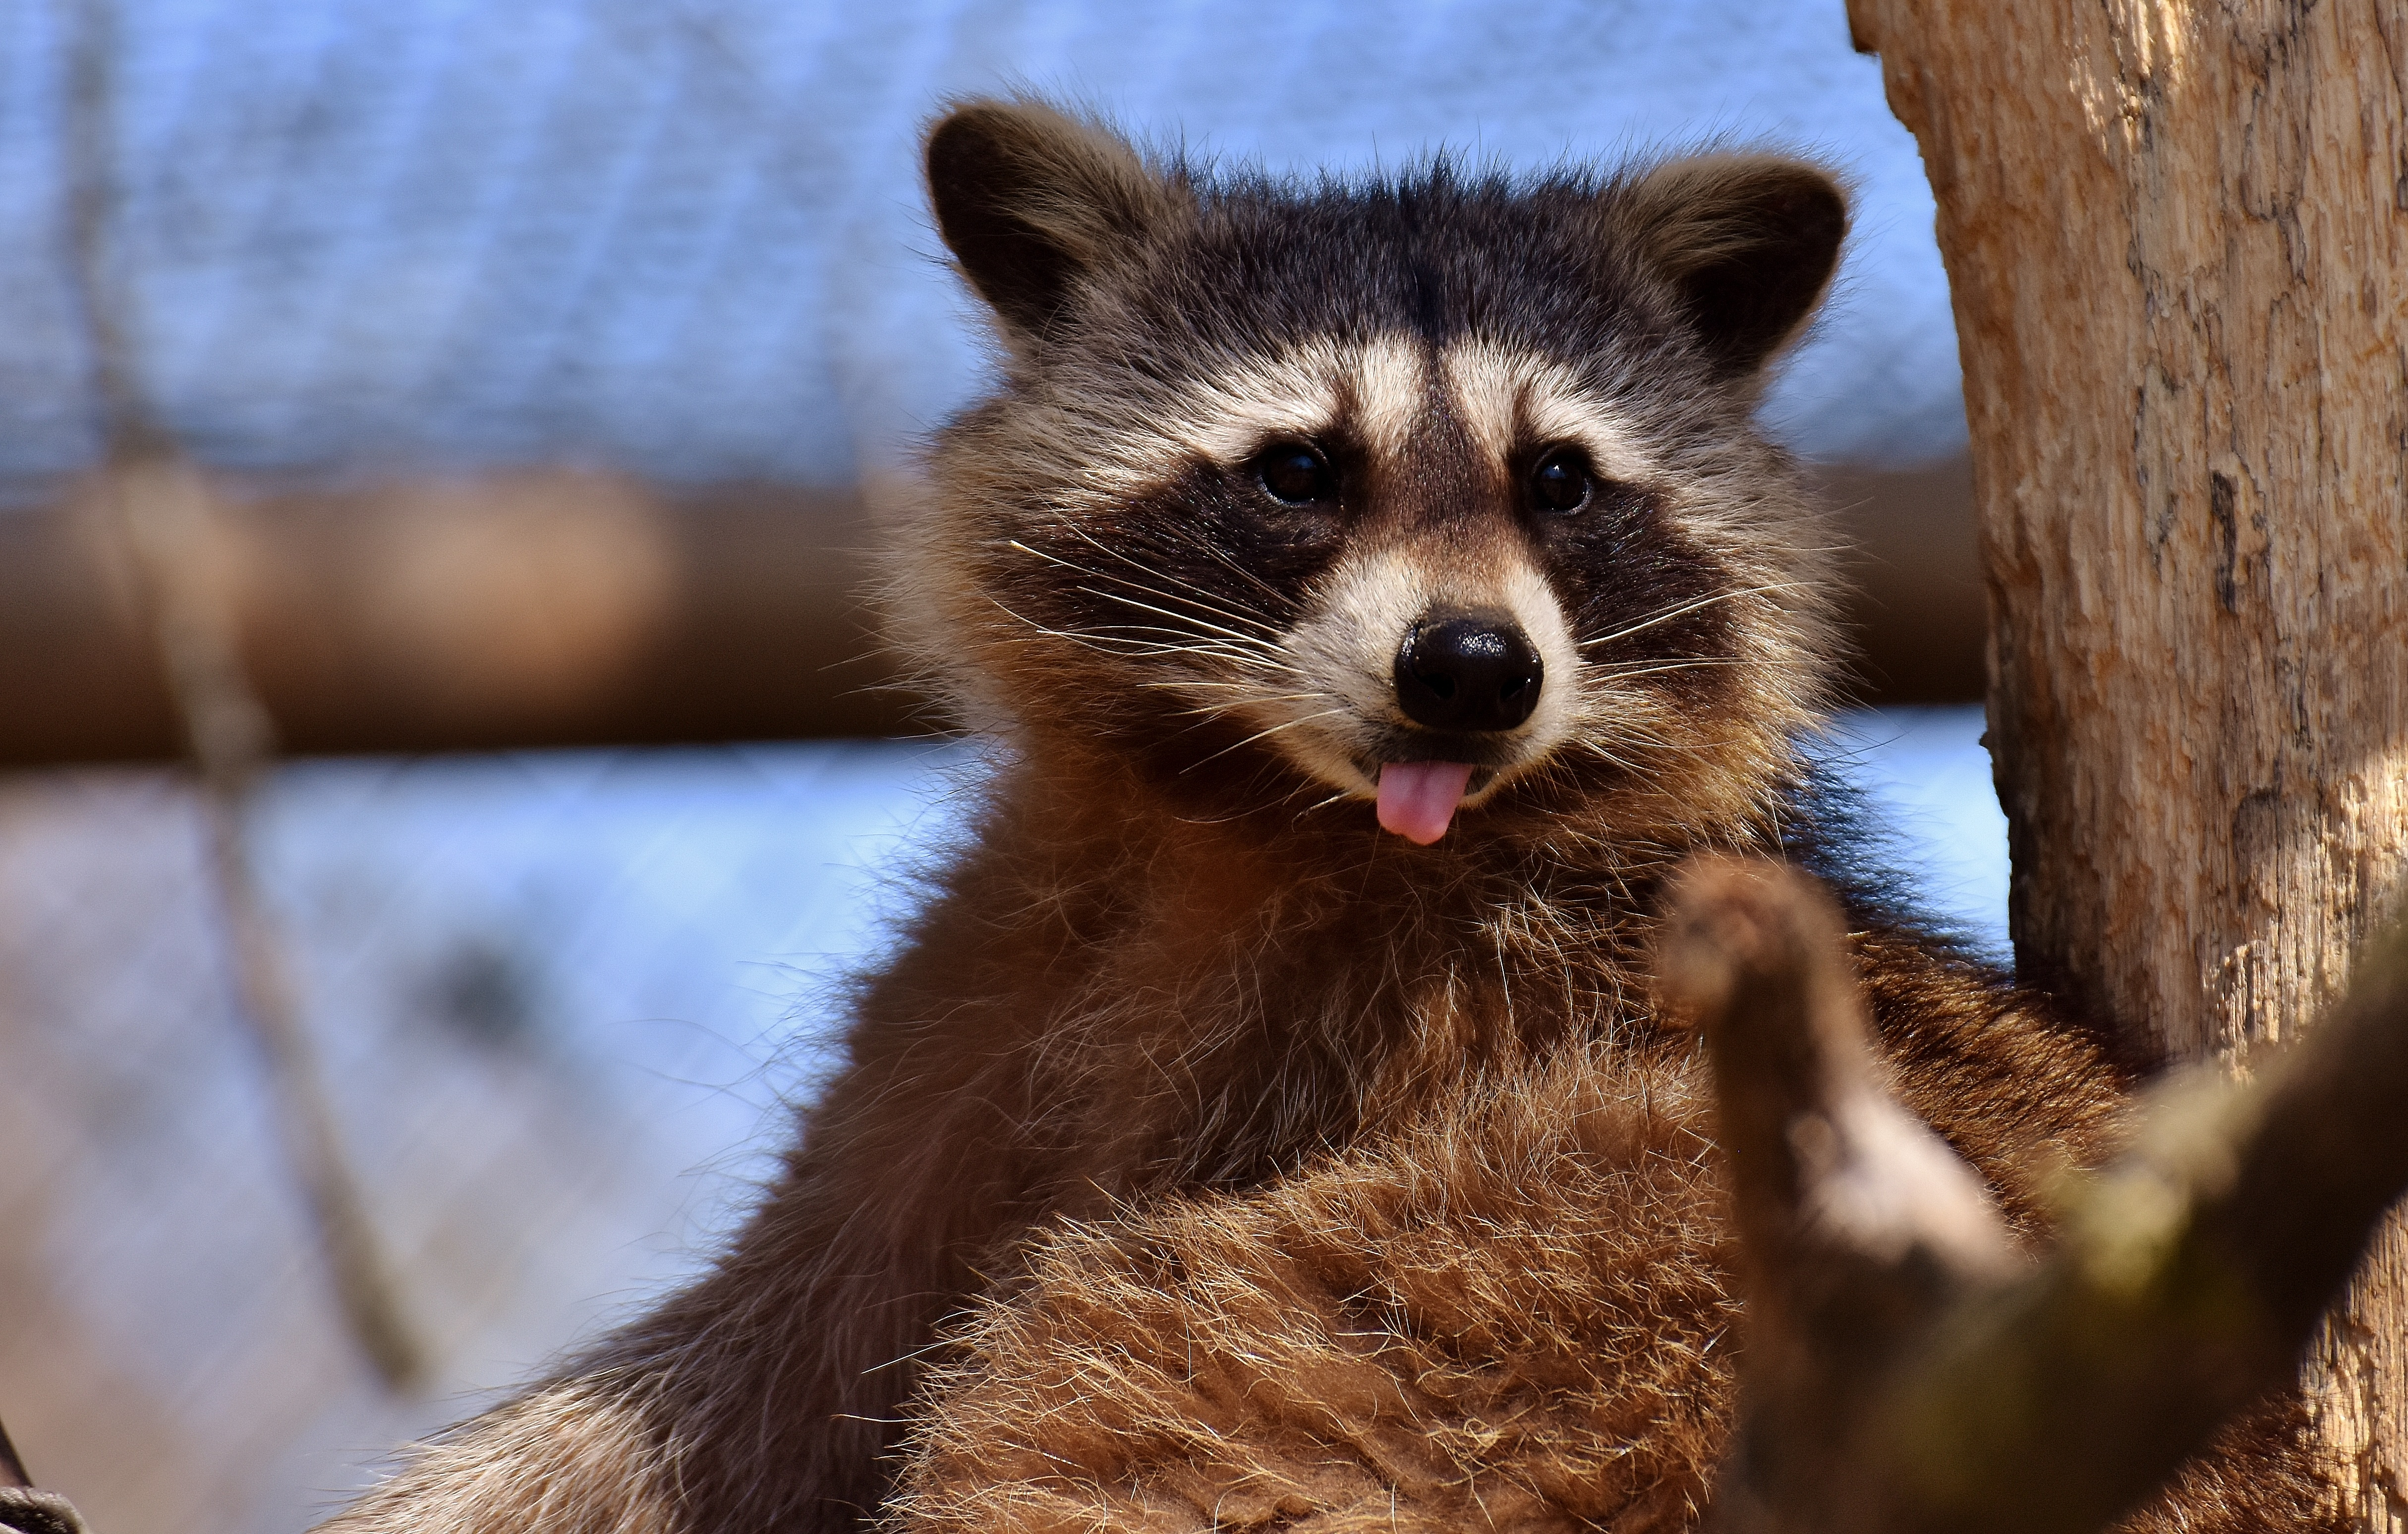 130550 Screensavers and Wallpapers Raccoon for phone. Download Animals, Muzzle, Protruding Tongue, Tongue Stuck Out, Raccoon pictures for free